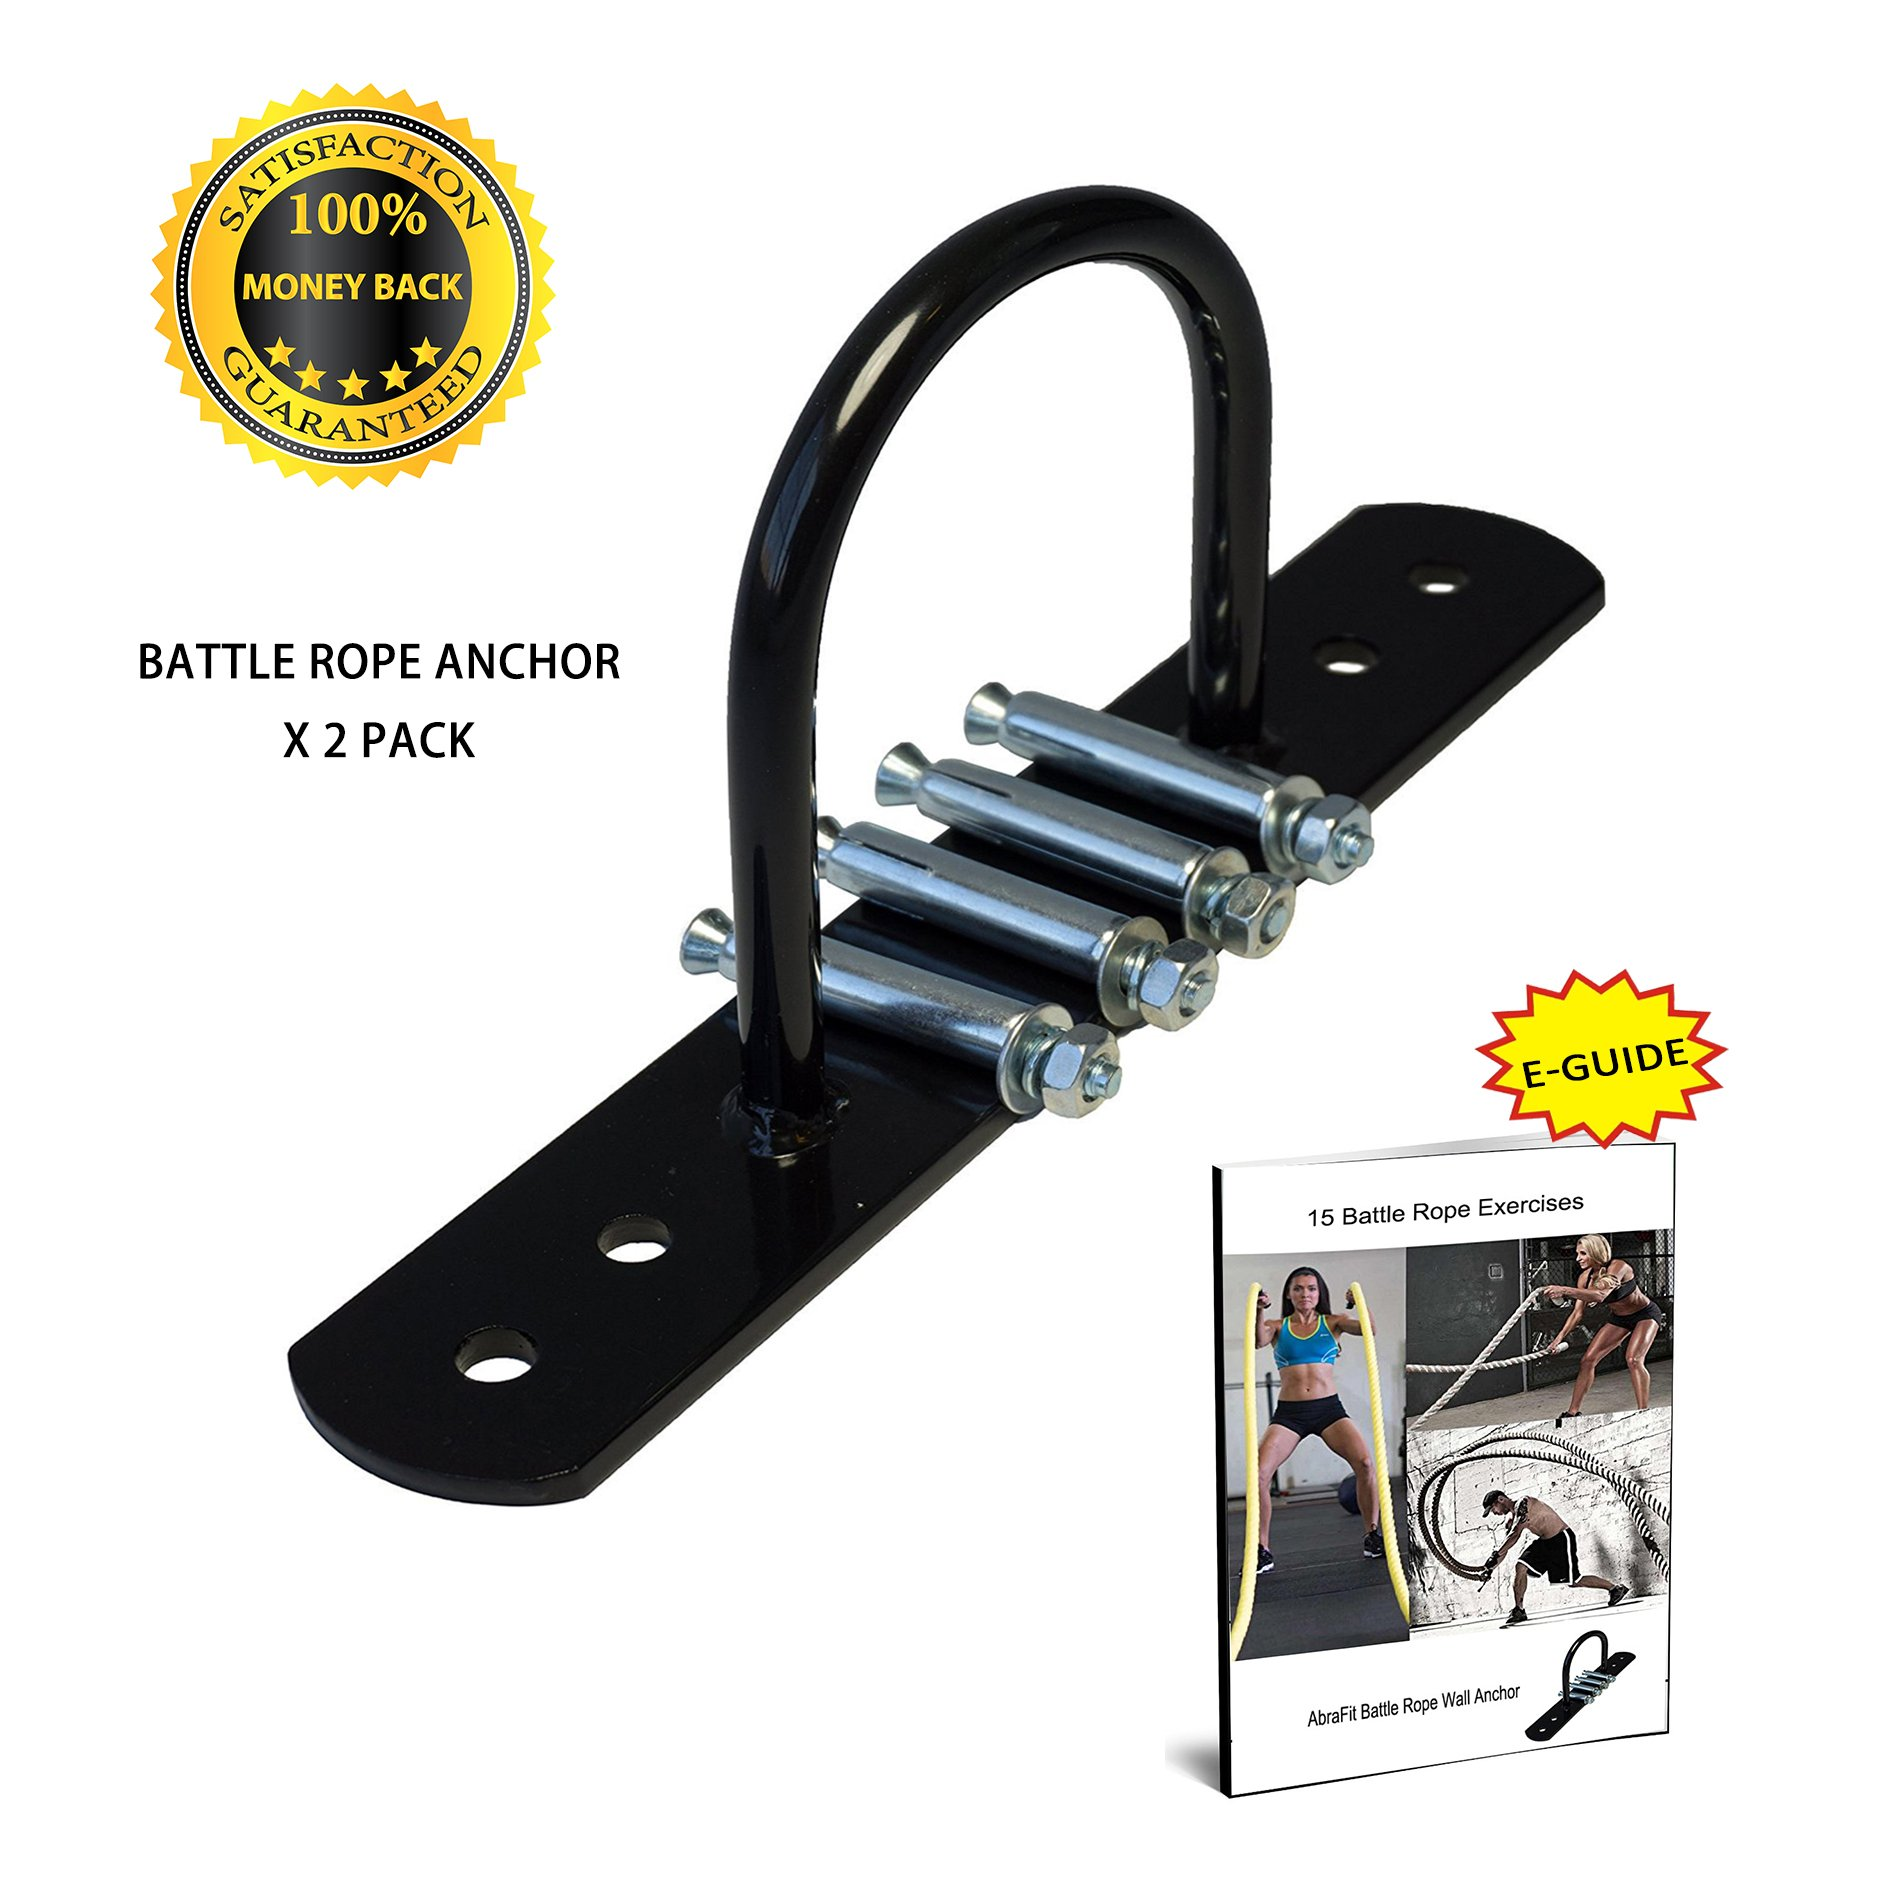 AbraFit Battle Rope Wall Anchor Walll Mount, Ideal Anchoring Solution for Battle Rope, Bodyweight Suspension Strap and Resistance Training, Comes with Battle Rope Workout E-Guide (Black X 2 Pack)